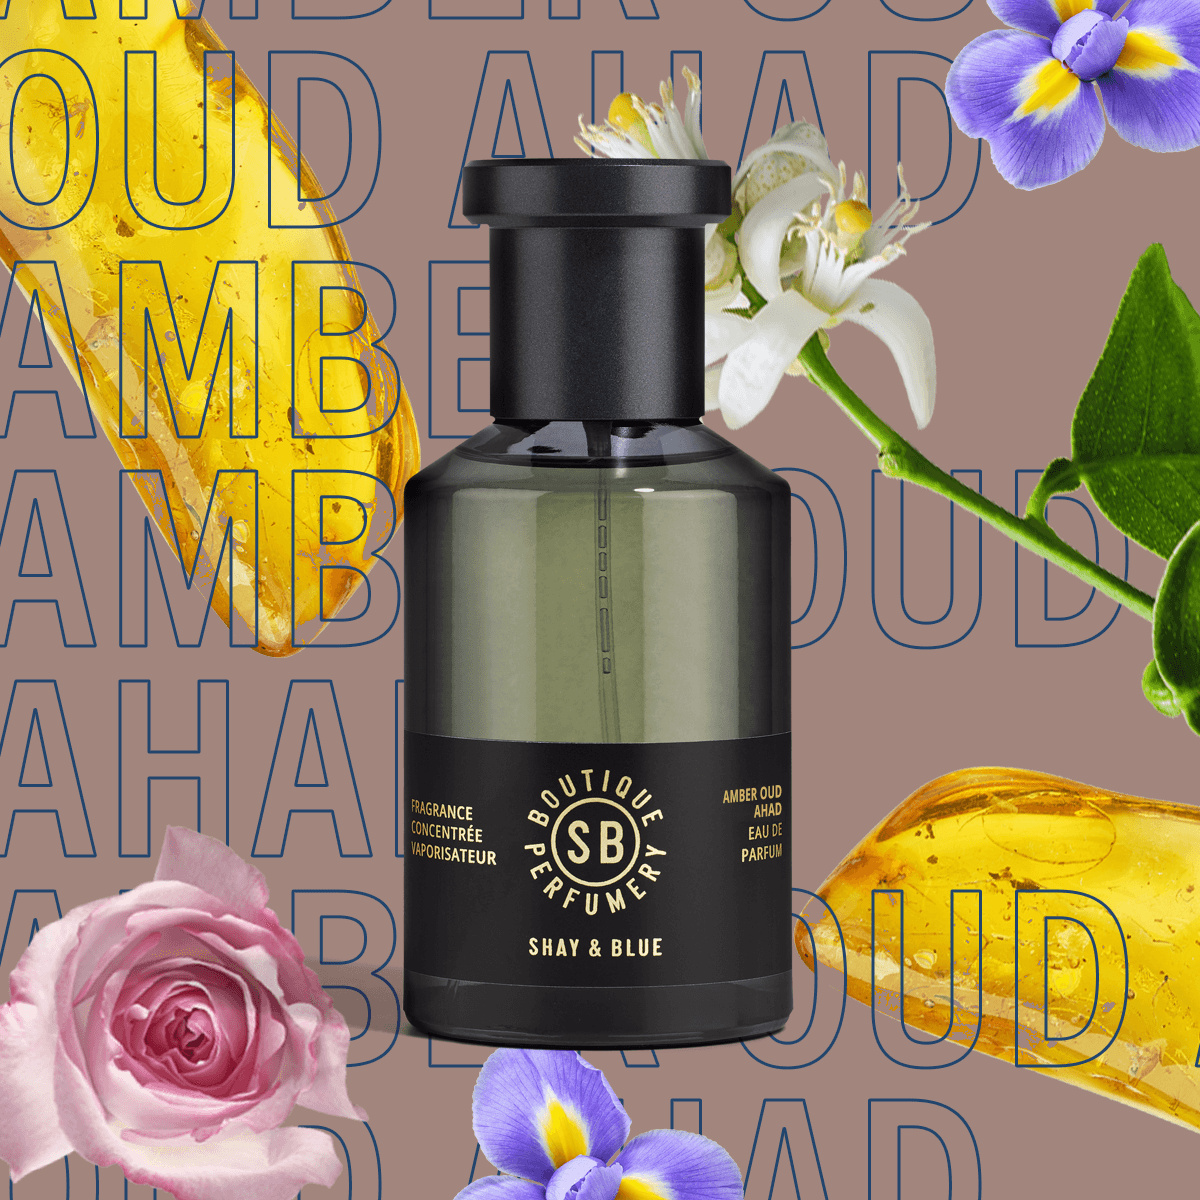 Amber Oud Ahad Fragrance Concentrate 100ml | Richly opulent amber with rare oud. Kissed with elegant iris and red rose. | Clean All Gender Fragrance | Shay & Blue